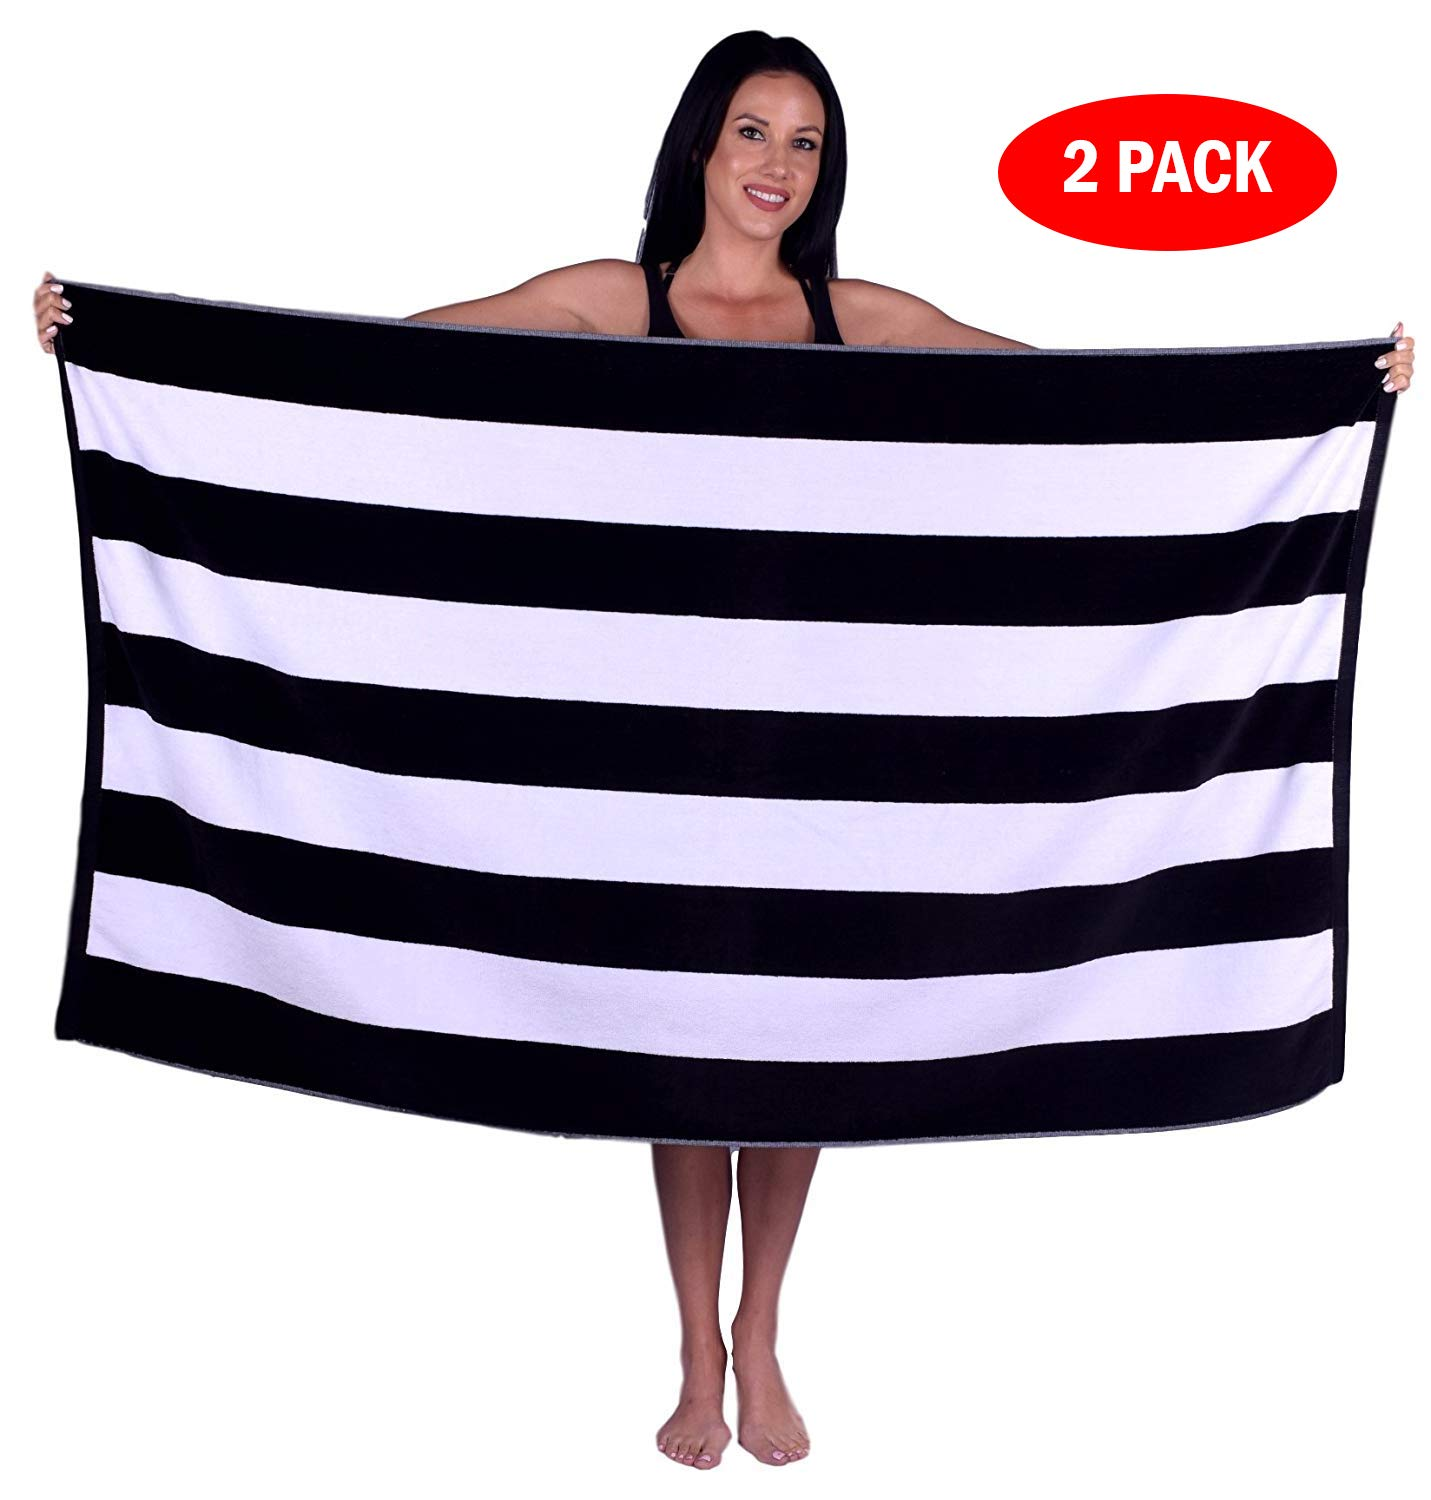 Turquoise Textile 100% Turkish Cotton Eco-Friendly Cabana Stripe Pool Beach Towel, 35x60 Inch (2 Pack, Black)